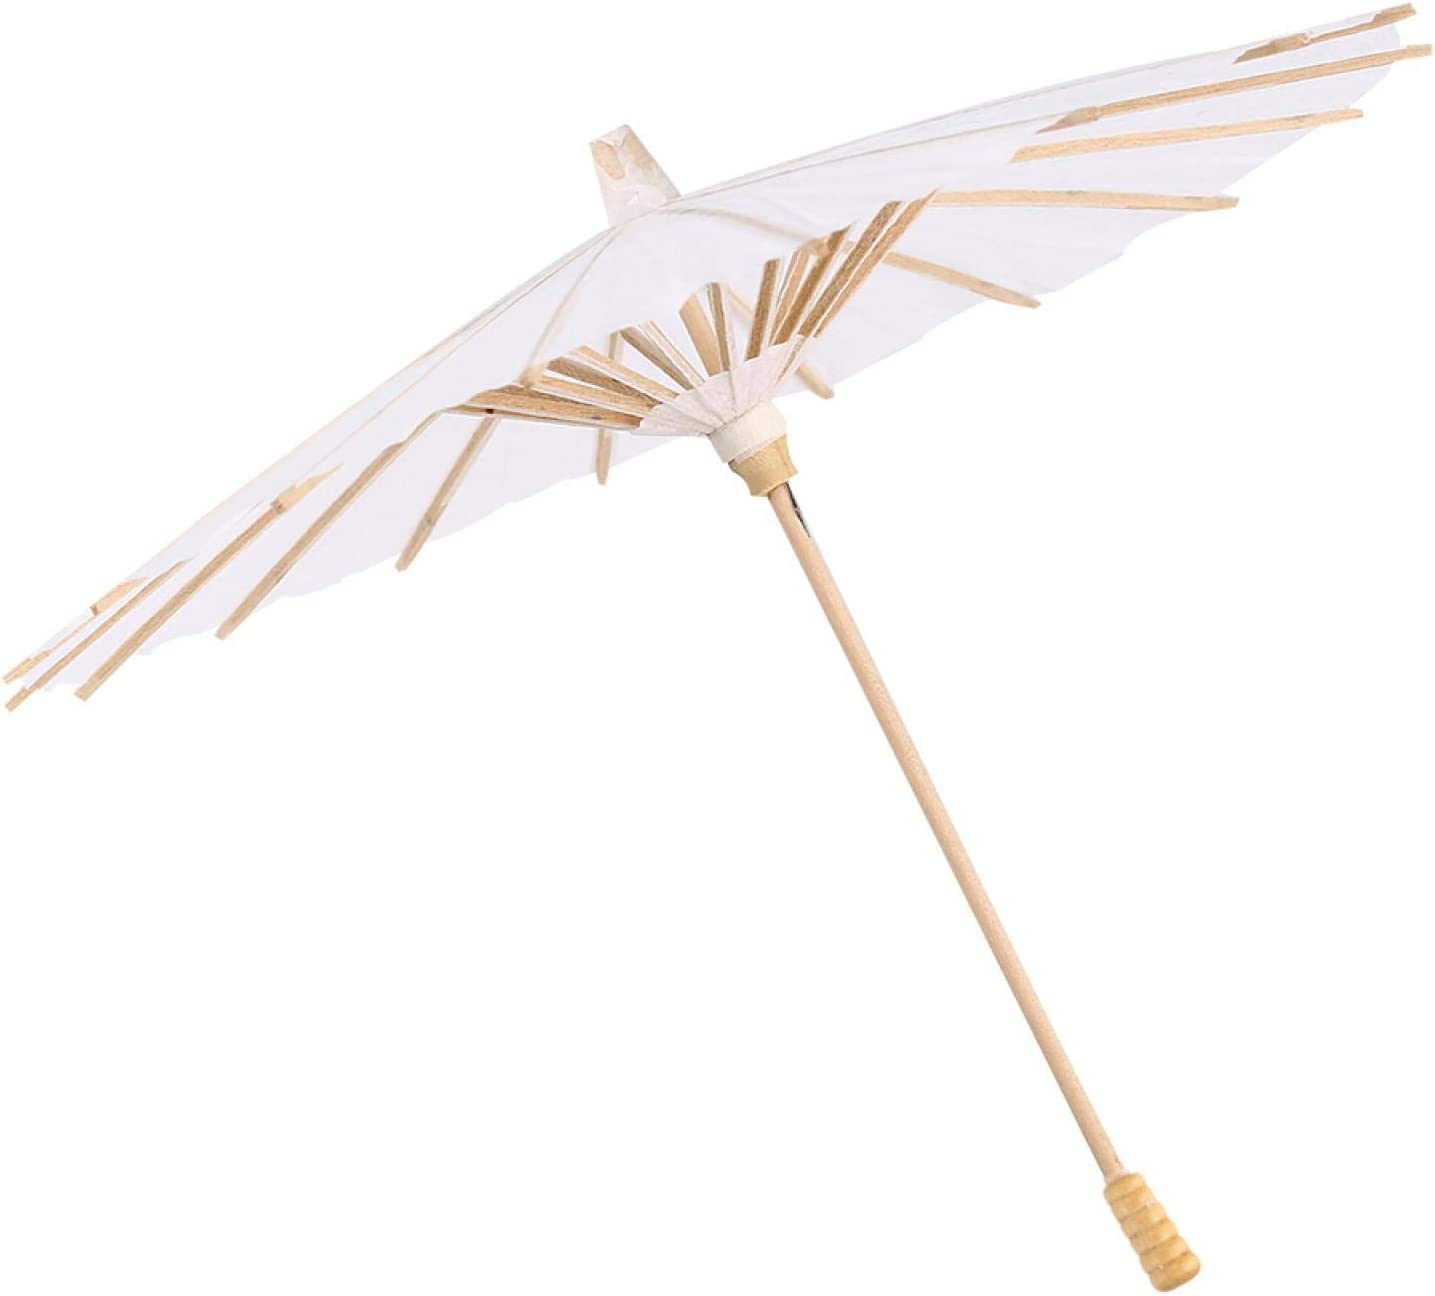 Chinese Max 41% OFF Decorative Umbrella Painting DIY Fixed price for sale White